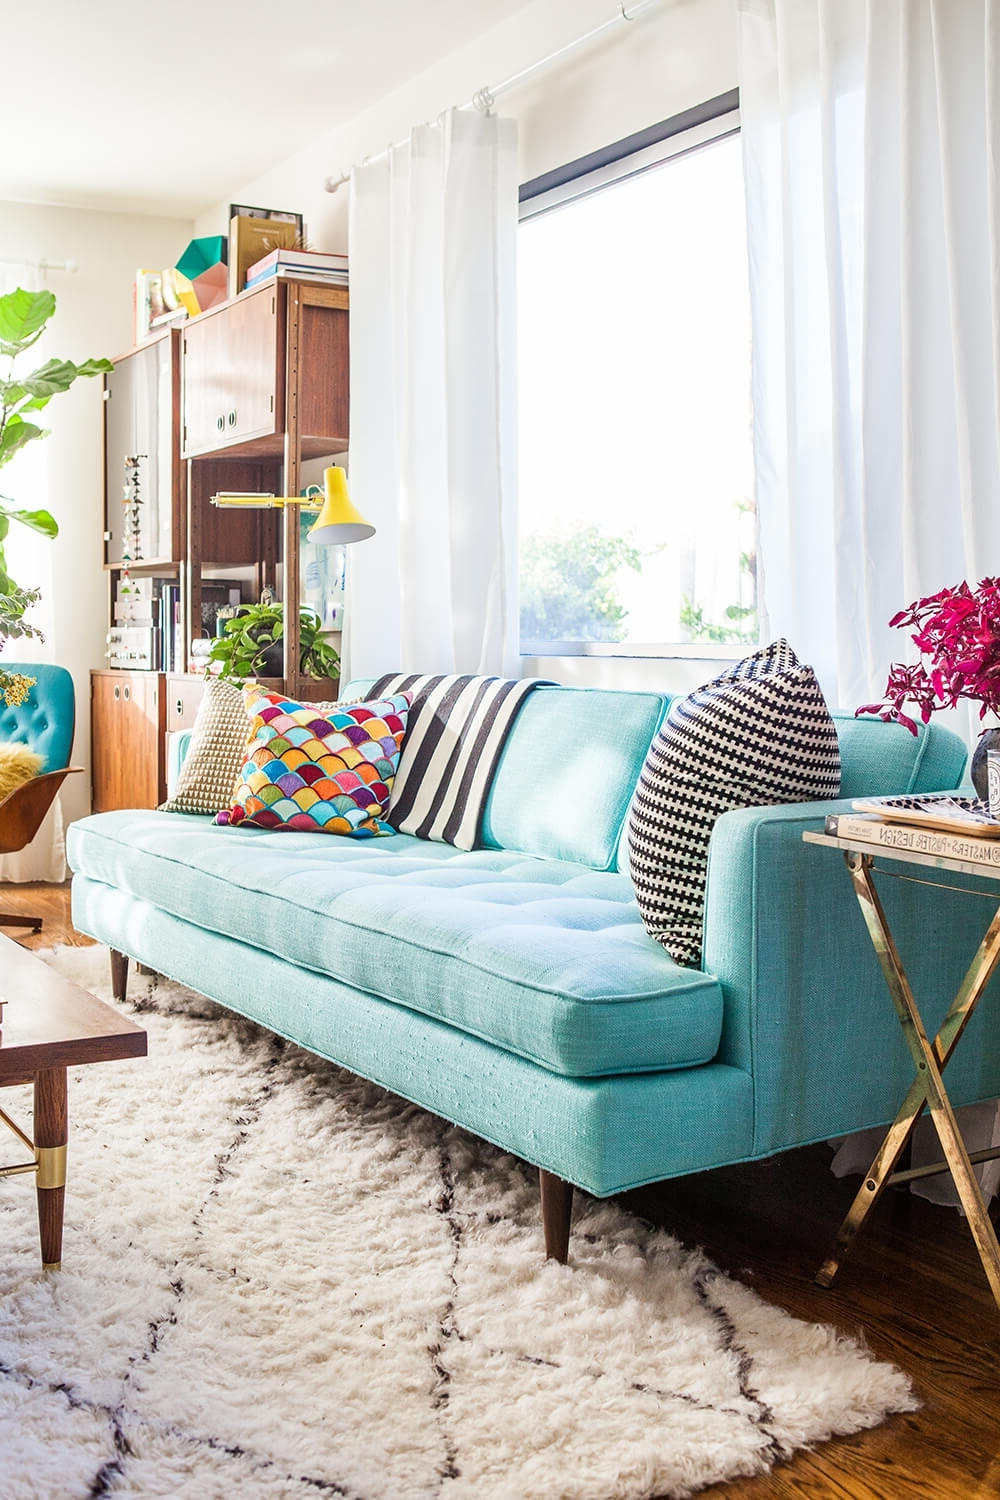 84 Affordable Amazing Sofas Under $1000 - Emily Henderson intended for Most Recent Turquoise Sofas